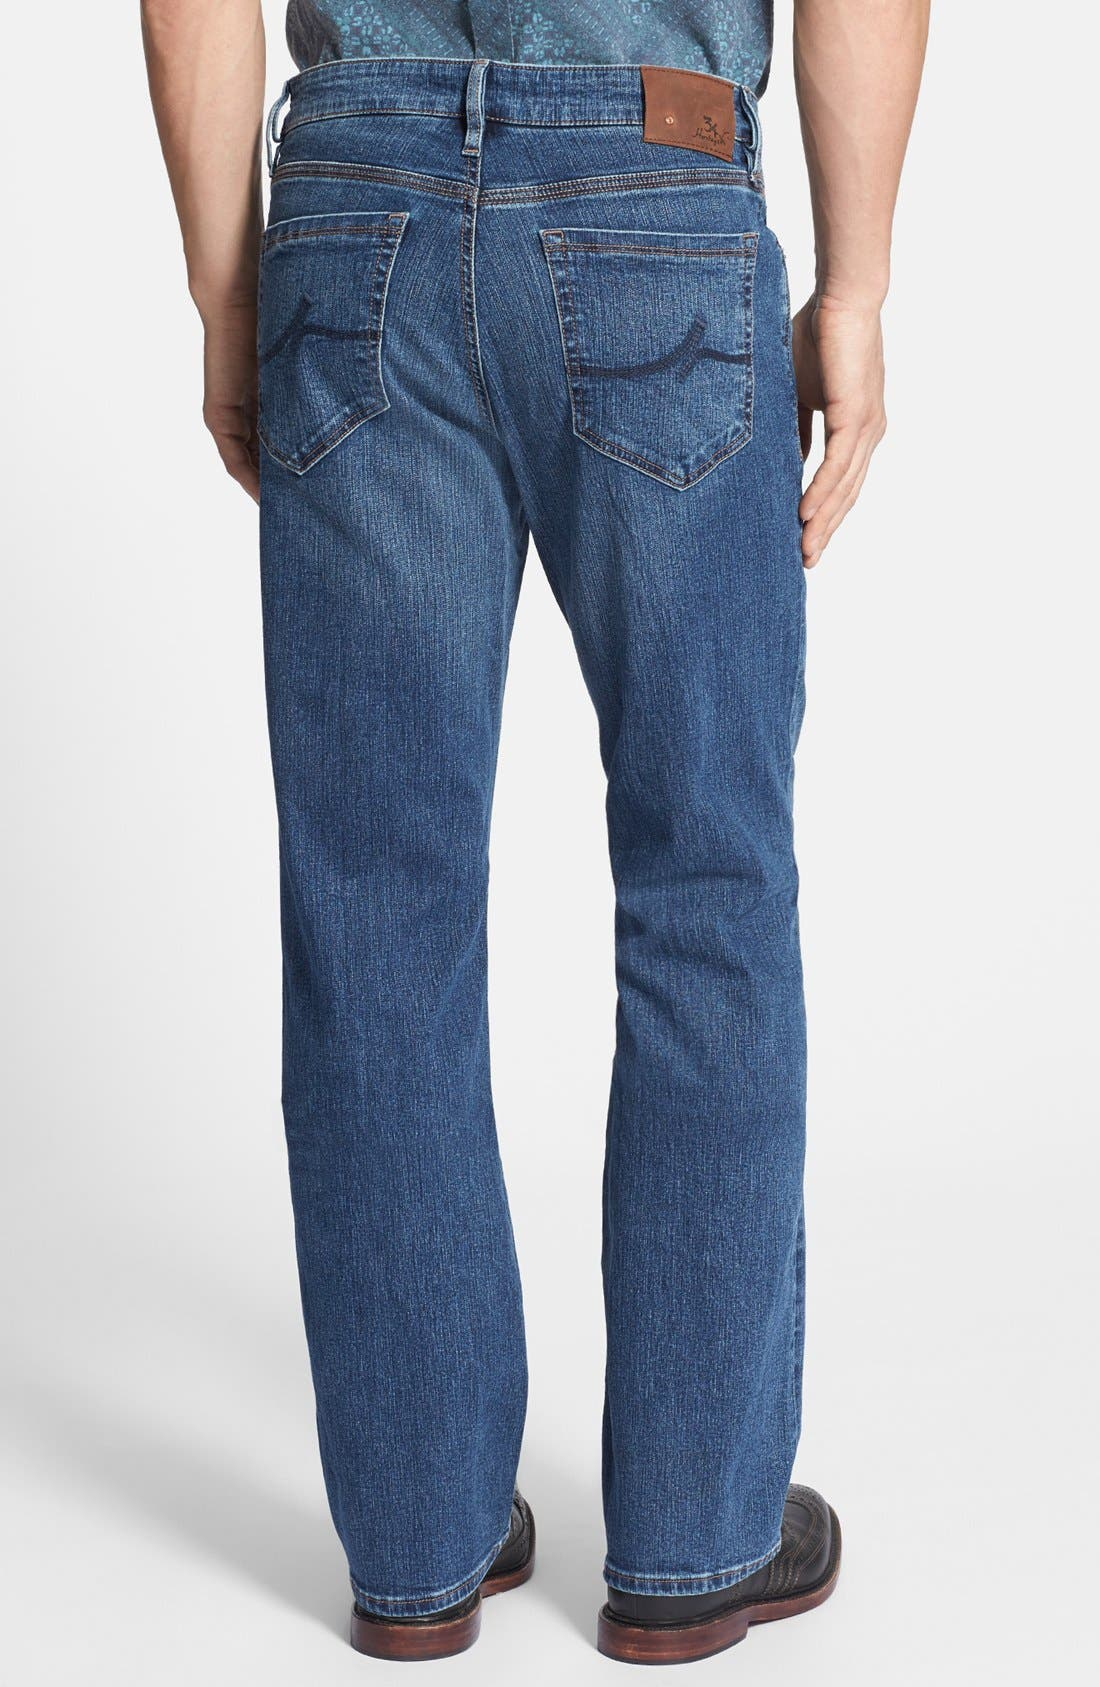 34 HERITAGE,                             'Charisma' Classic Relaxed Fit Jeans,                             Alternate thumbnail 5, color,                             MID COMFORT